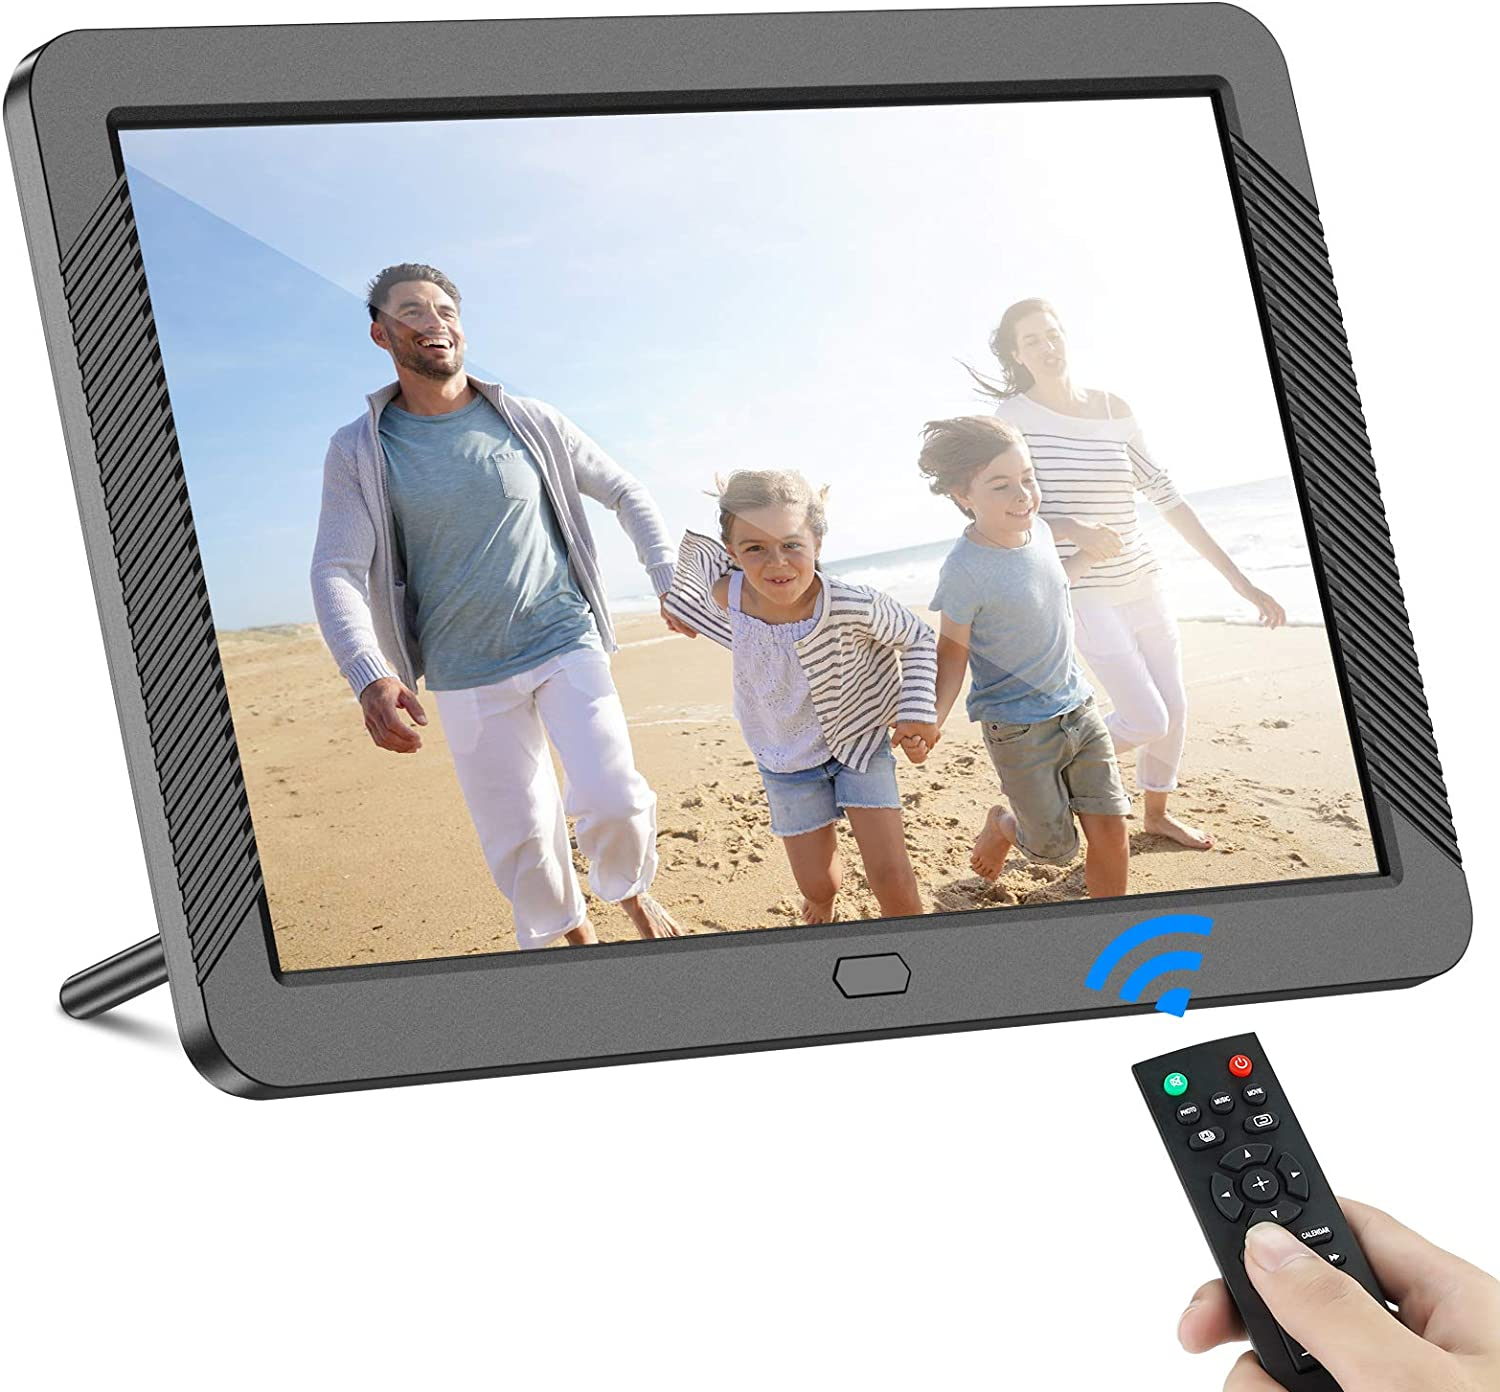 Digital Picture Frame 8 Inch 1920X1080P HD Digital Photo Frame with Remote Control 16:9 IPS Display Slideshow Zoom Image Stereo Video Background Music Support USB and SD Card